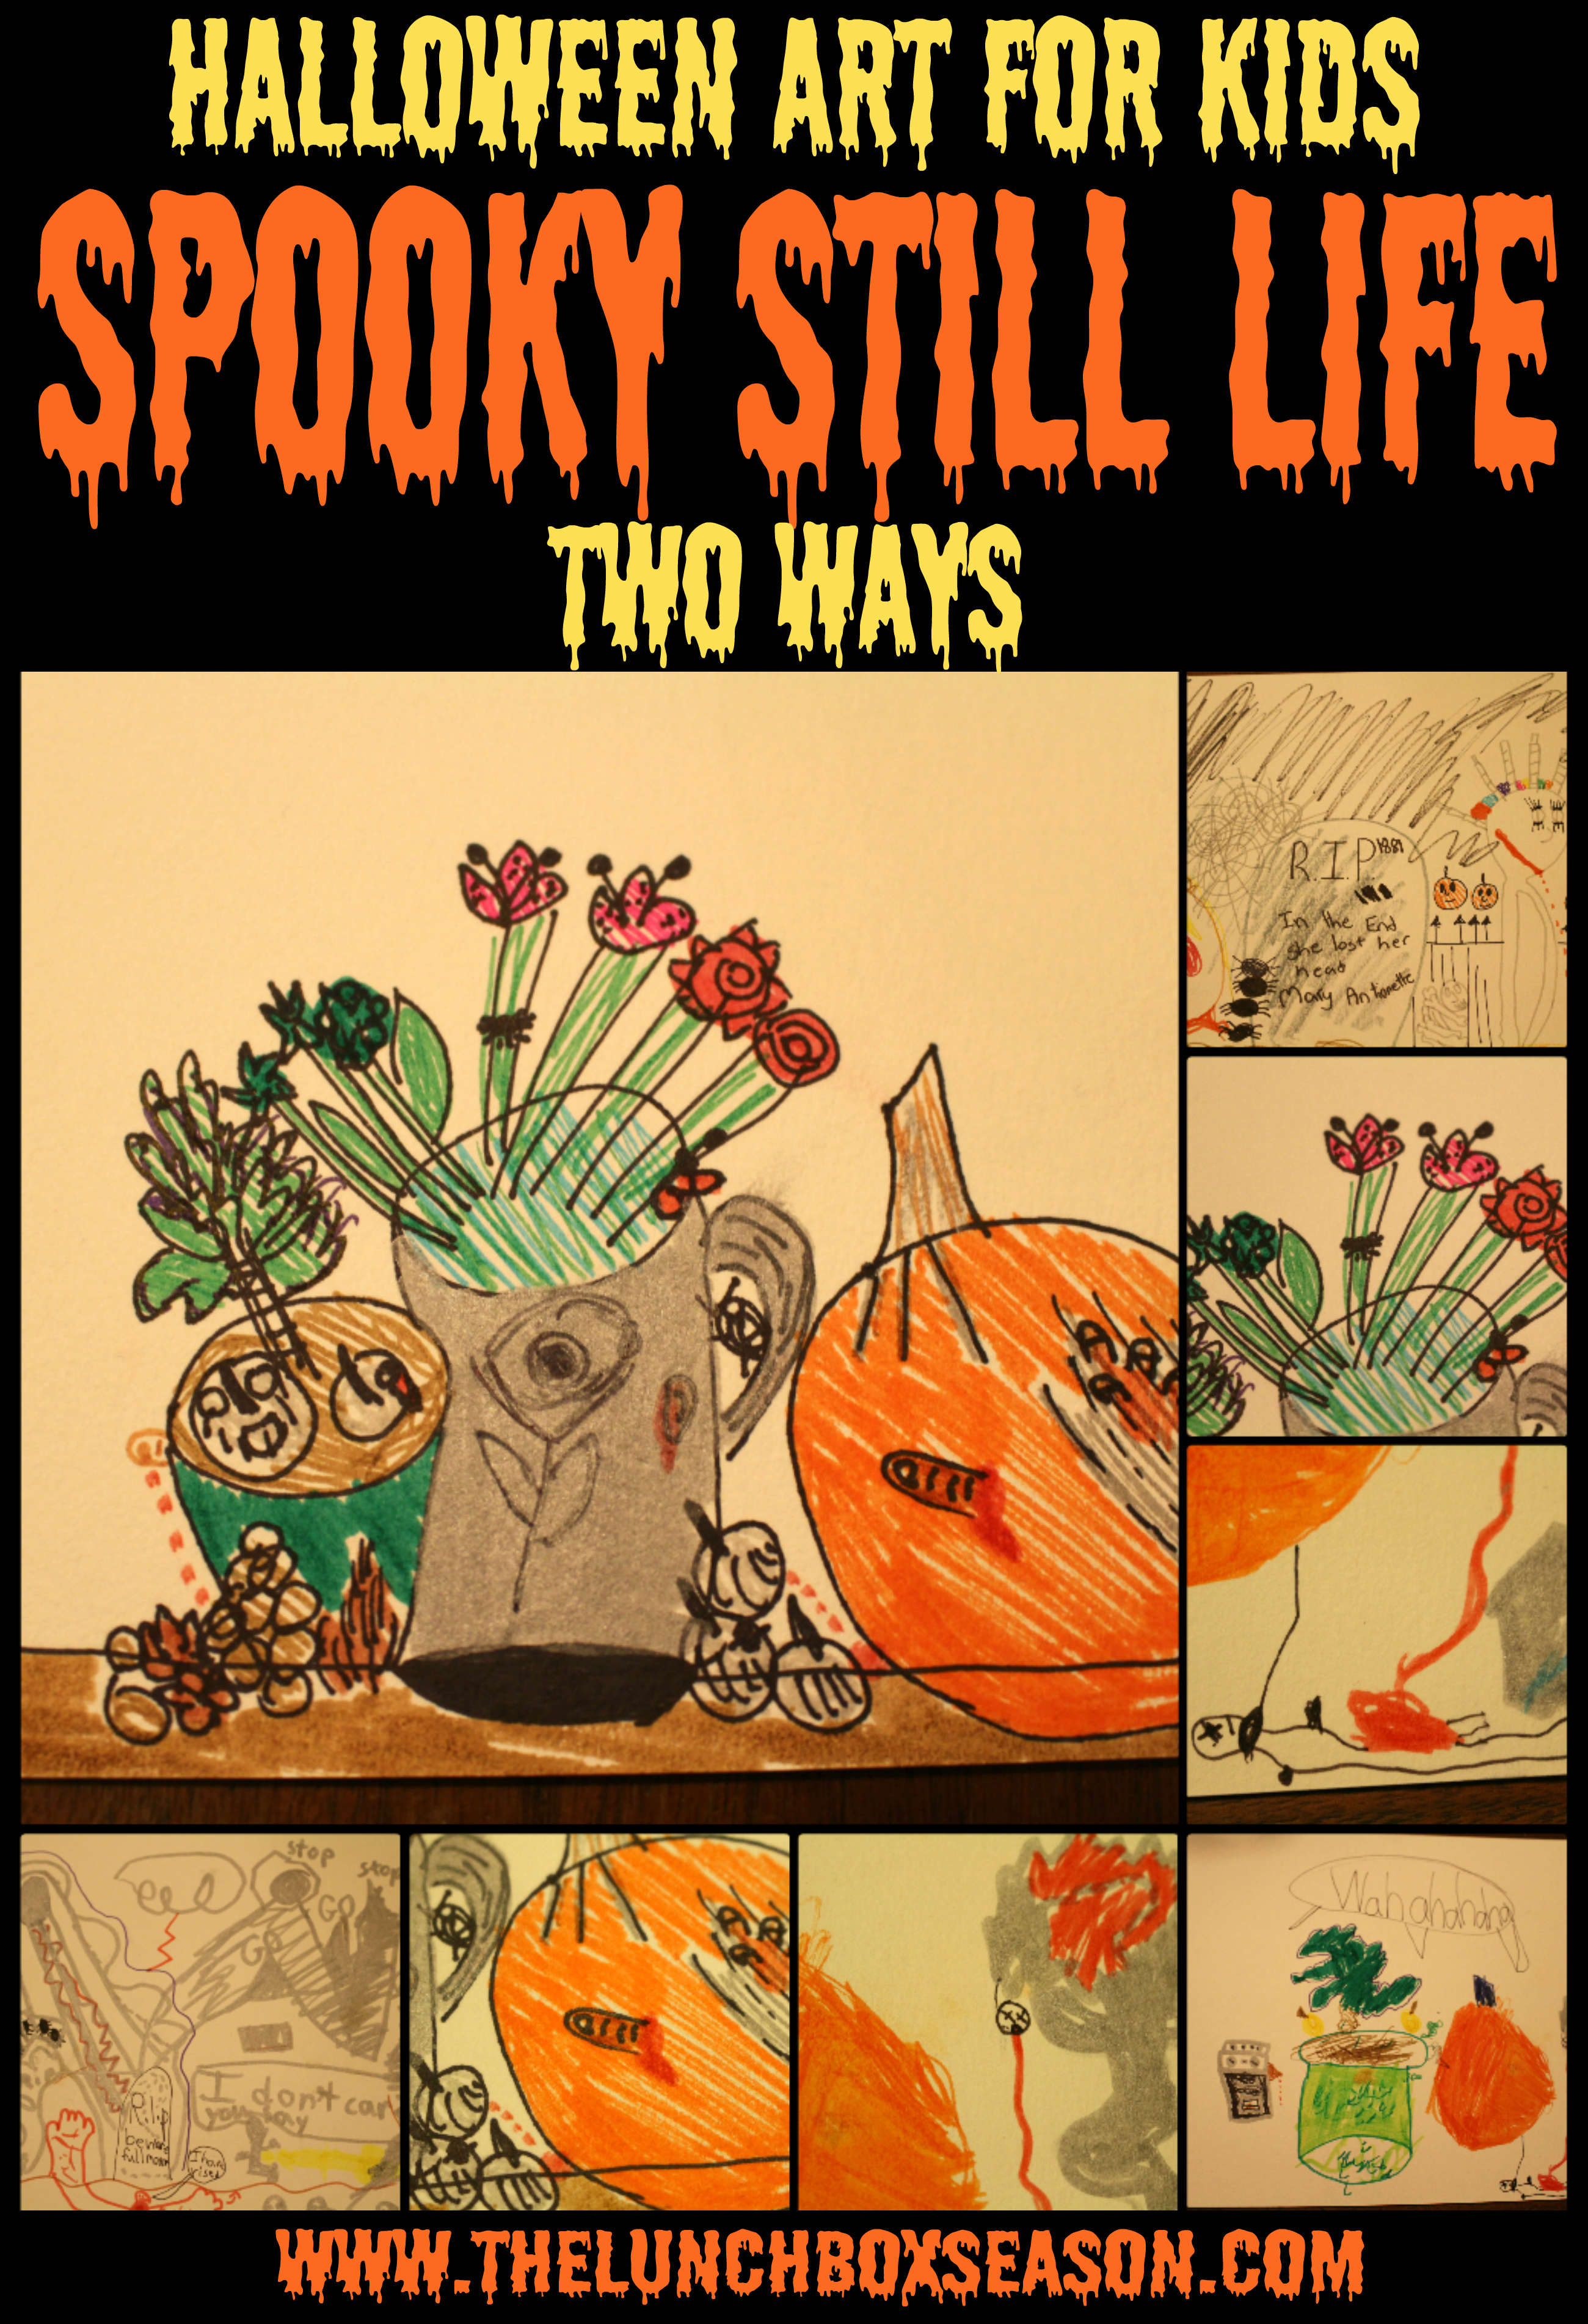 Painting A Dining Room Table Halloween Art For Kids Spooky Still Life Two Ways The